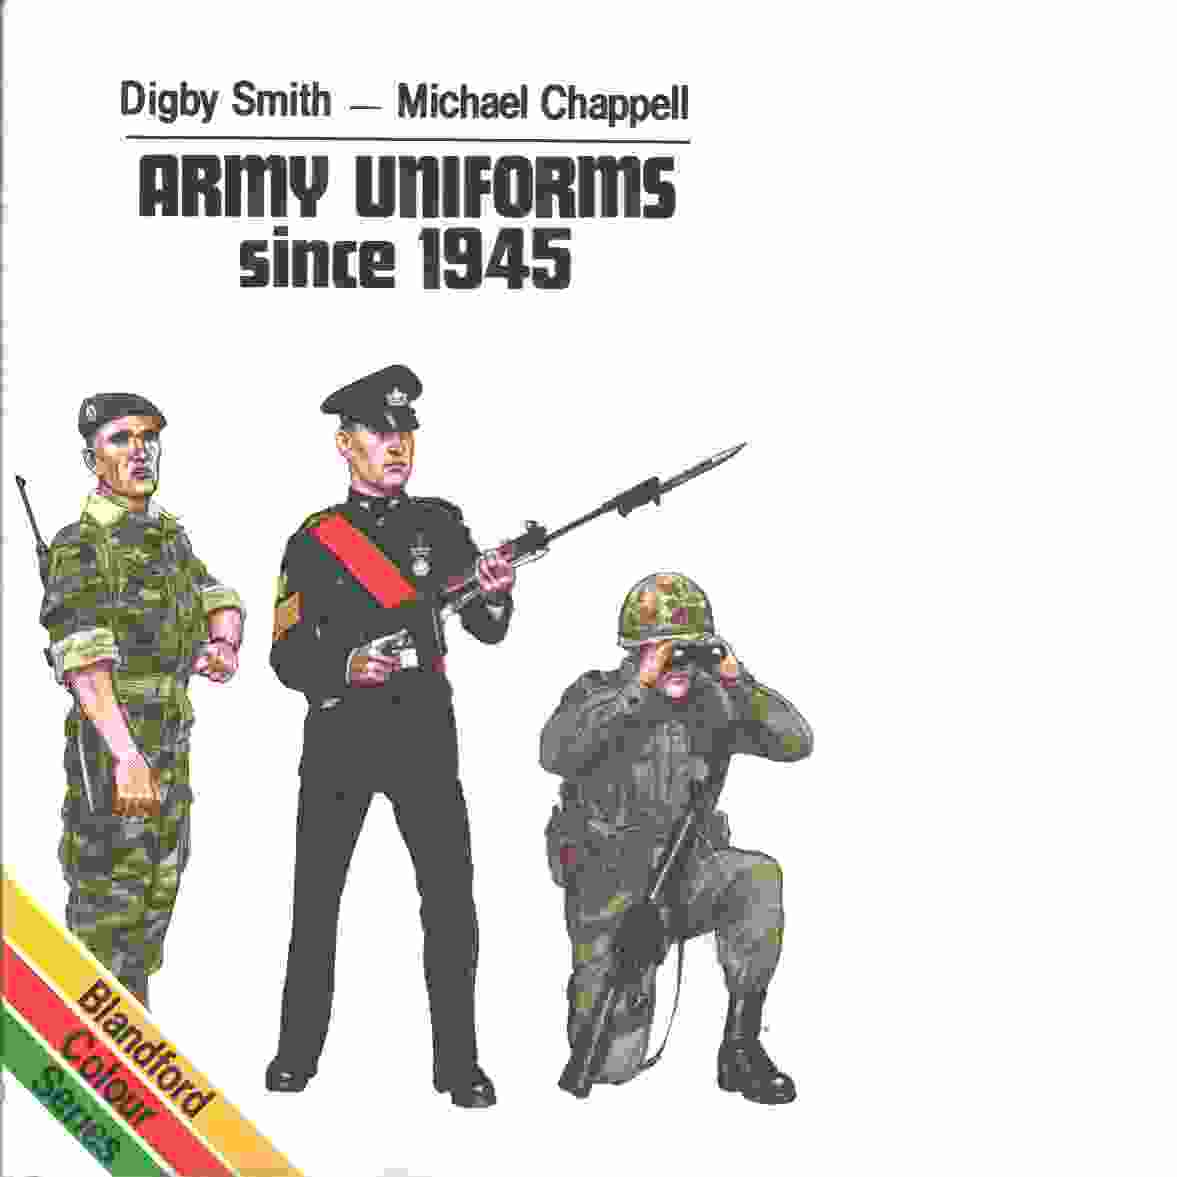 Army uniforms since 1945  - Smith, Digby